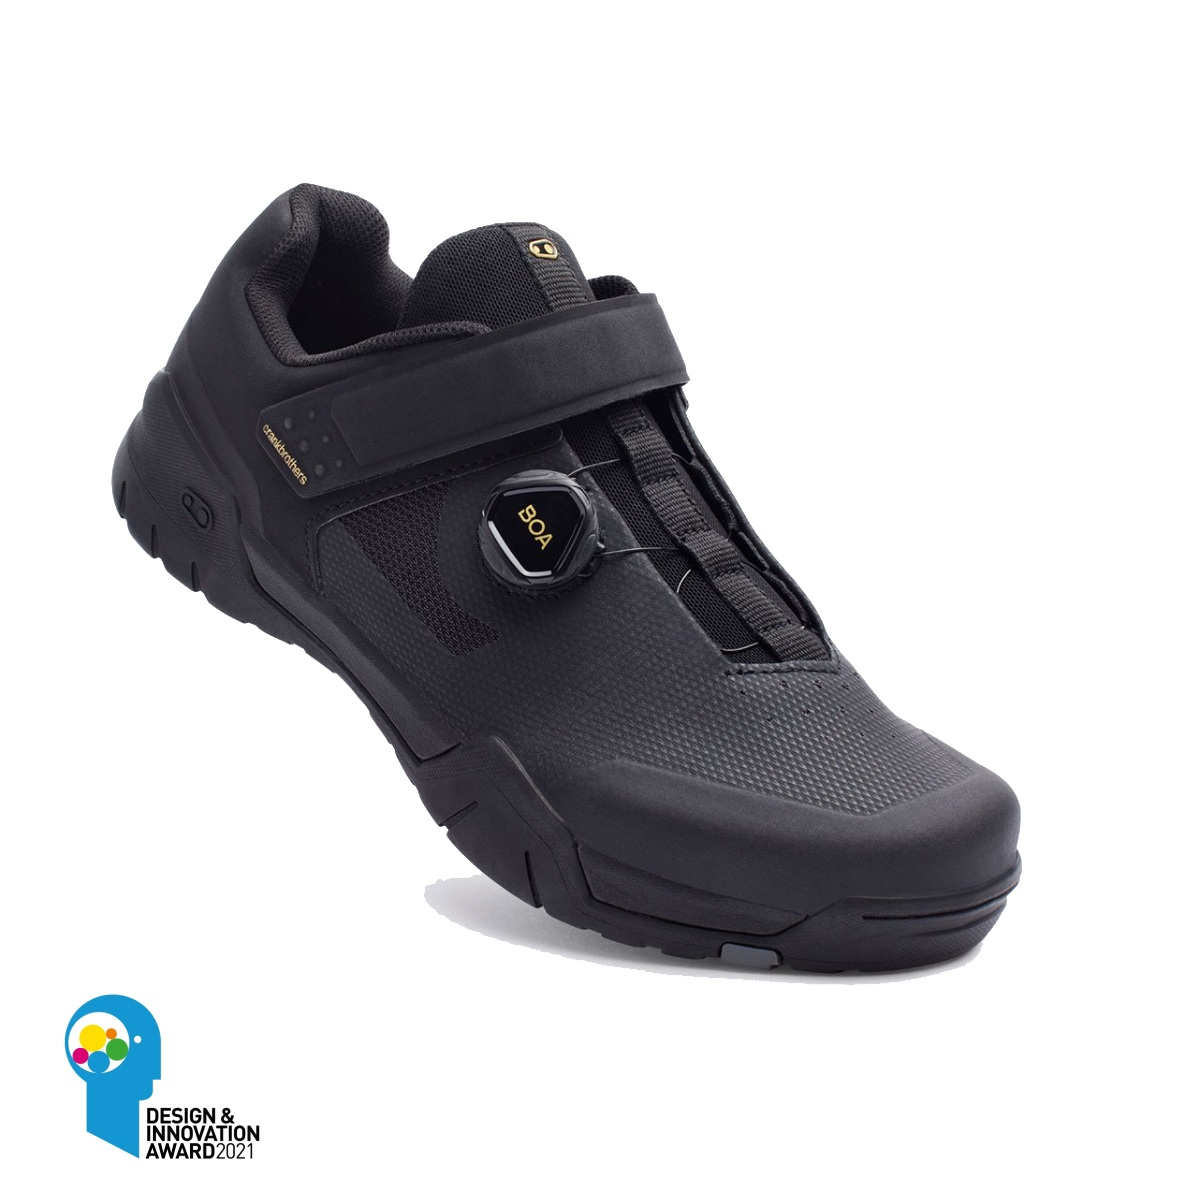 CHAUSSURES CRANK BROTHERS MALLET E BOA